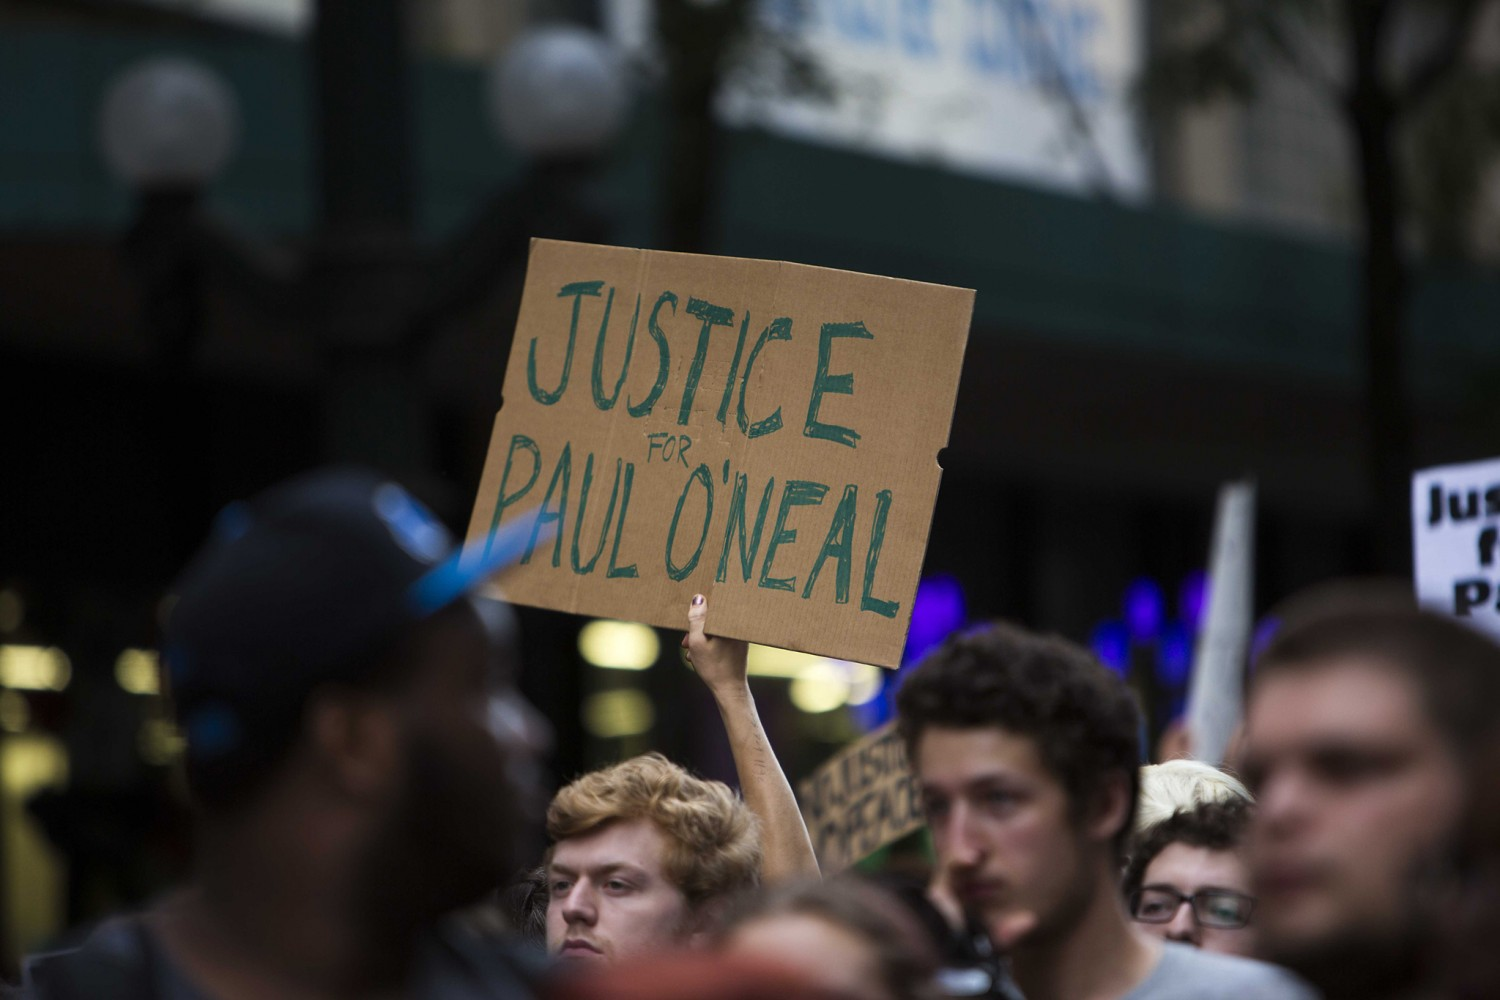 BLMChiYouth / Justice for Paul O'Neal